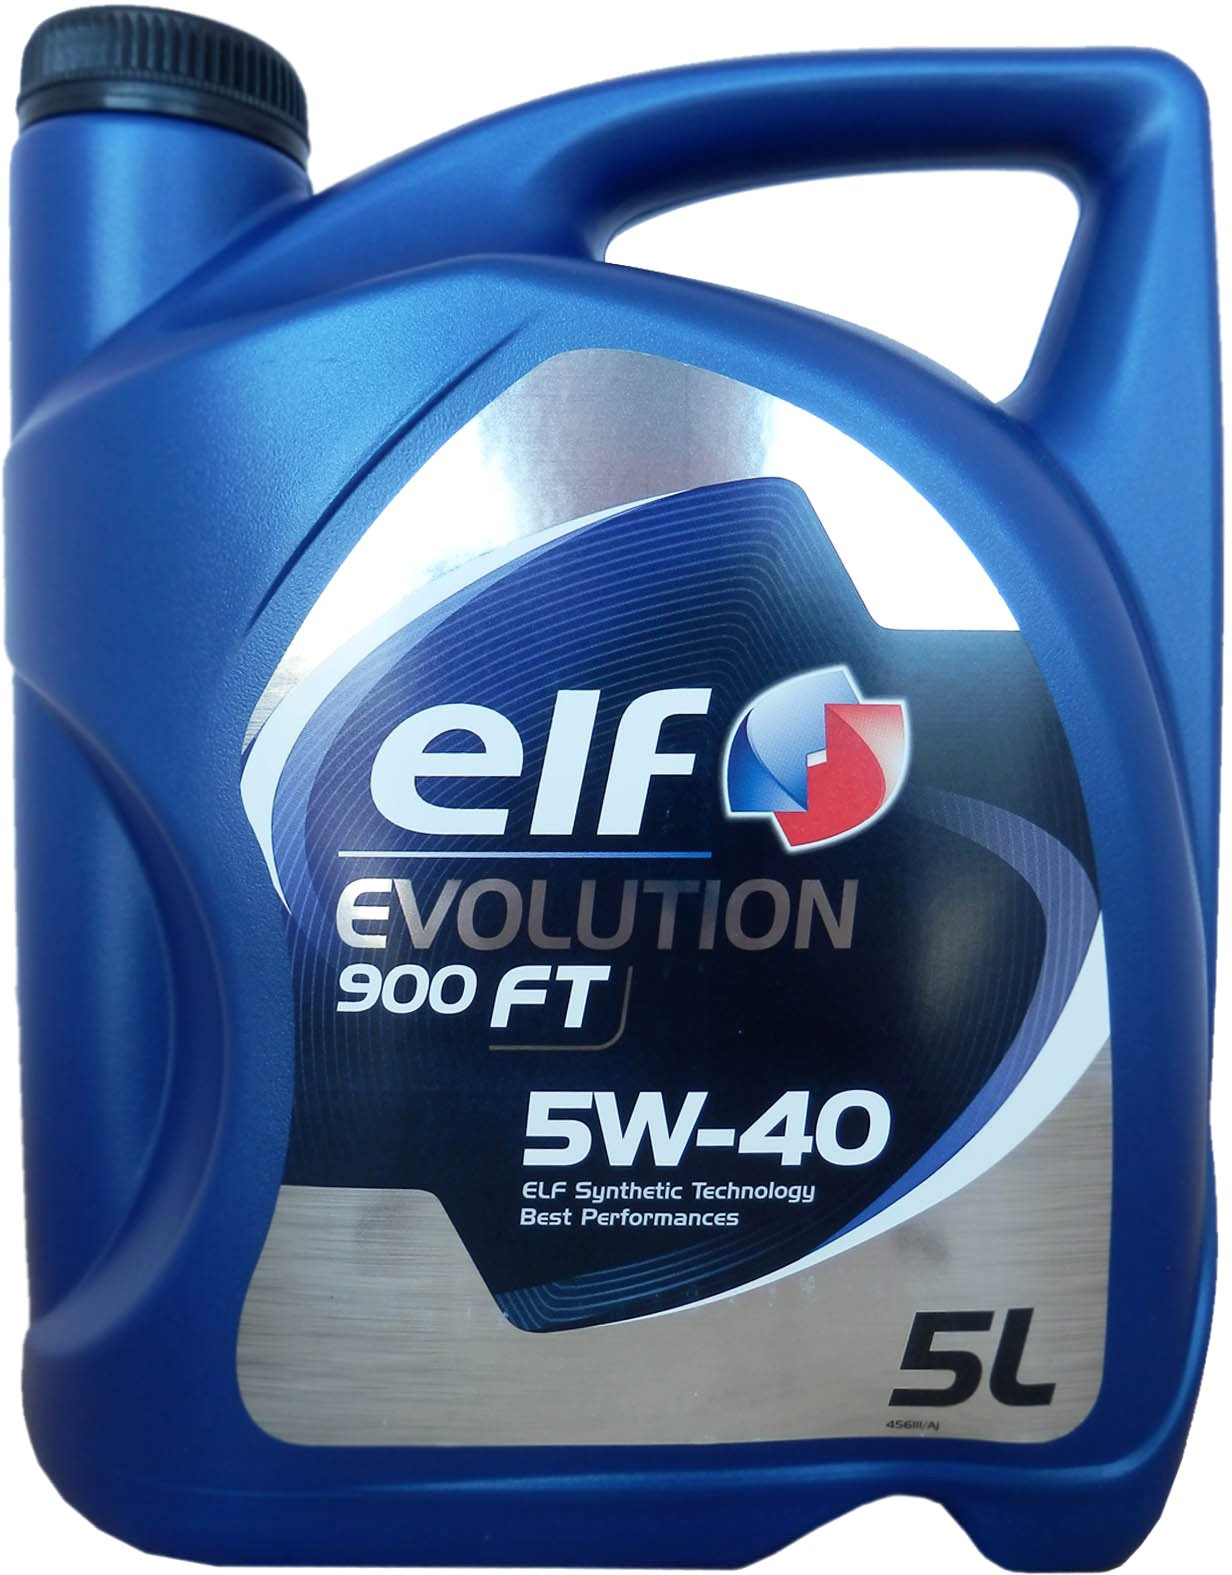 Elf Evolution 900 FT 5w-40